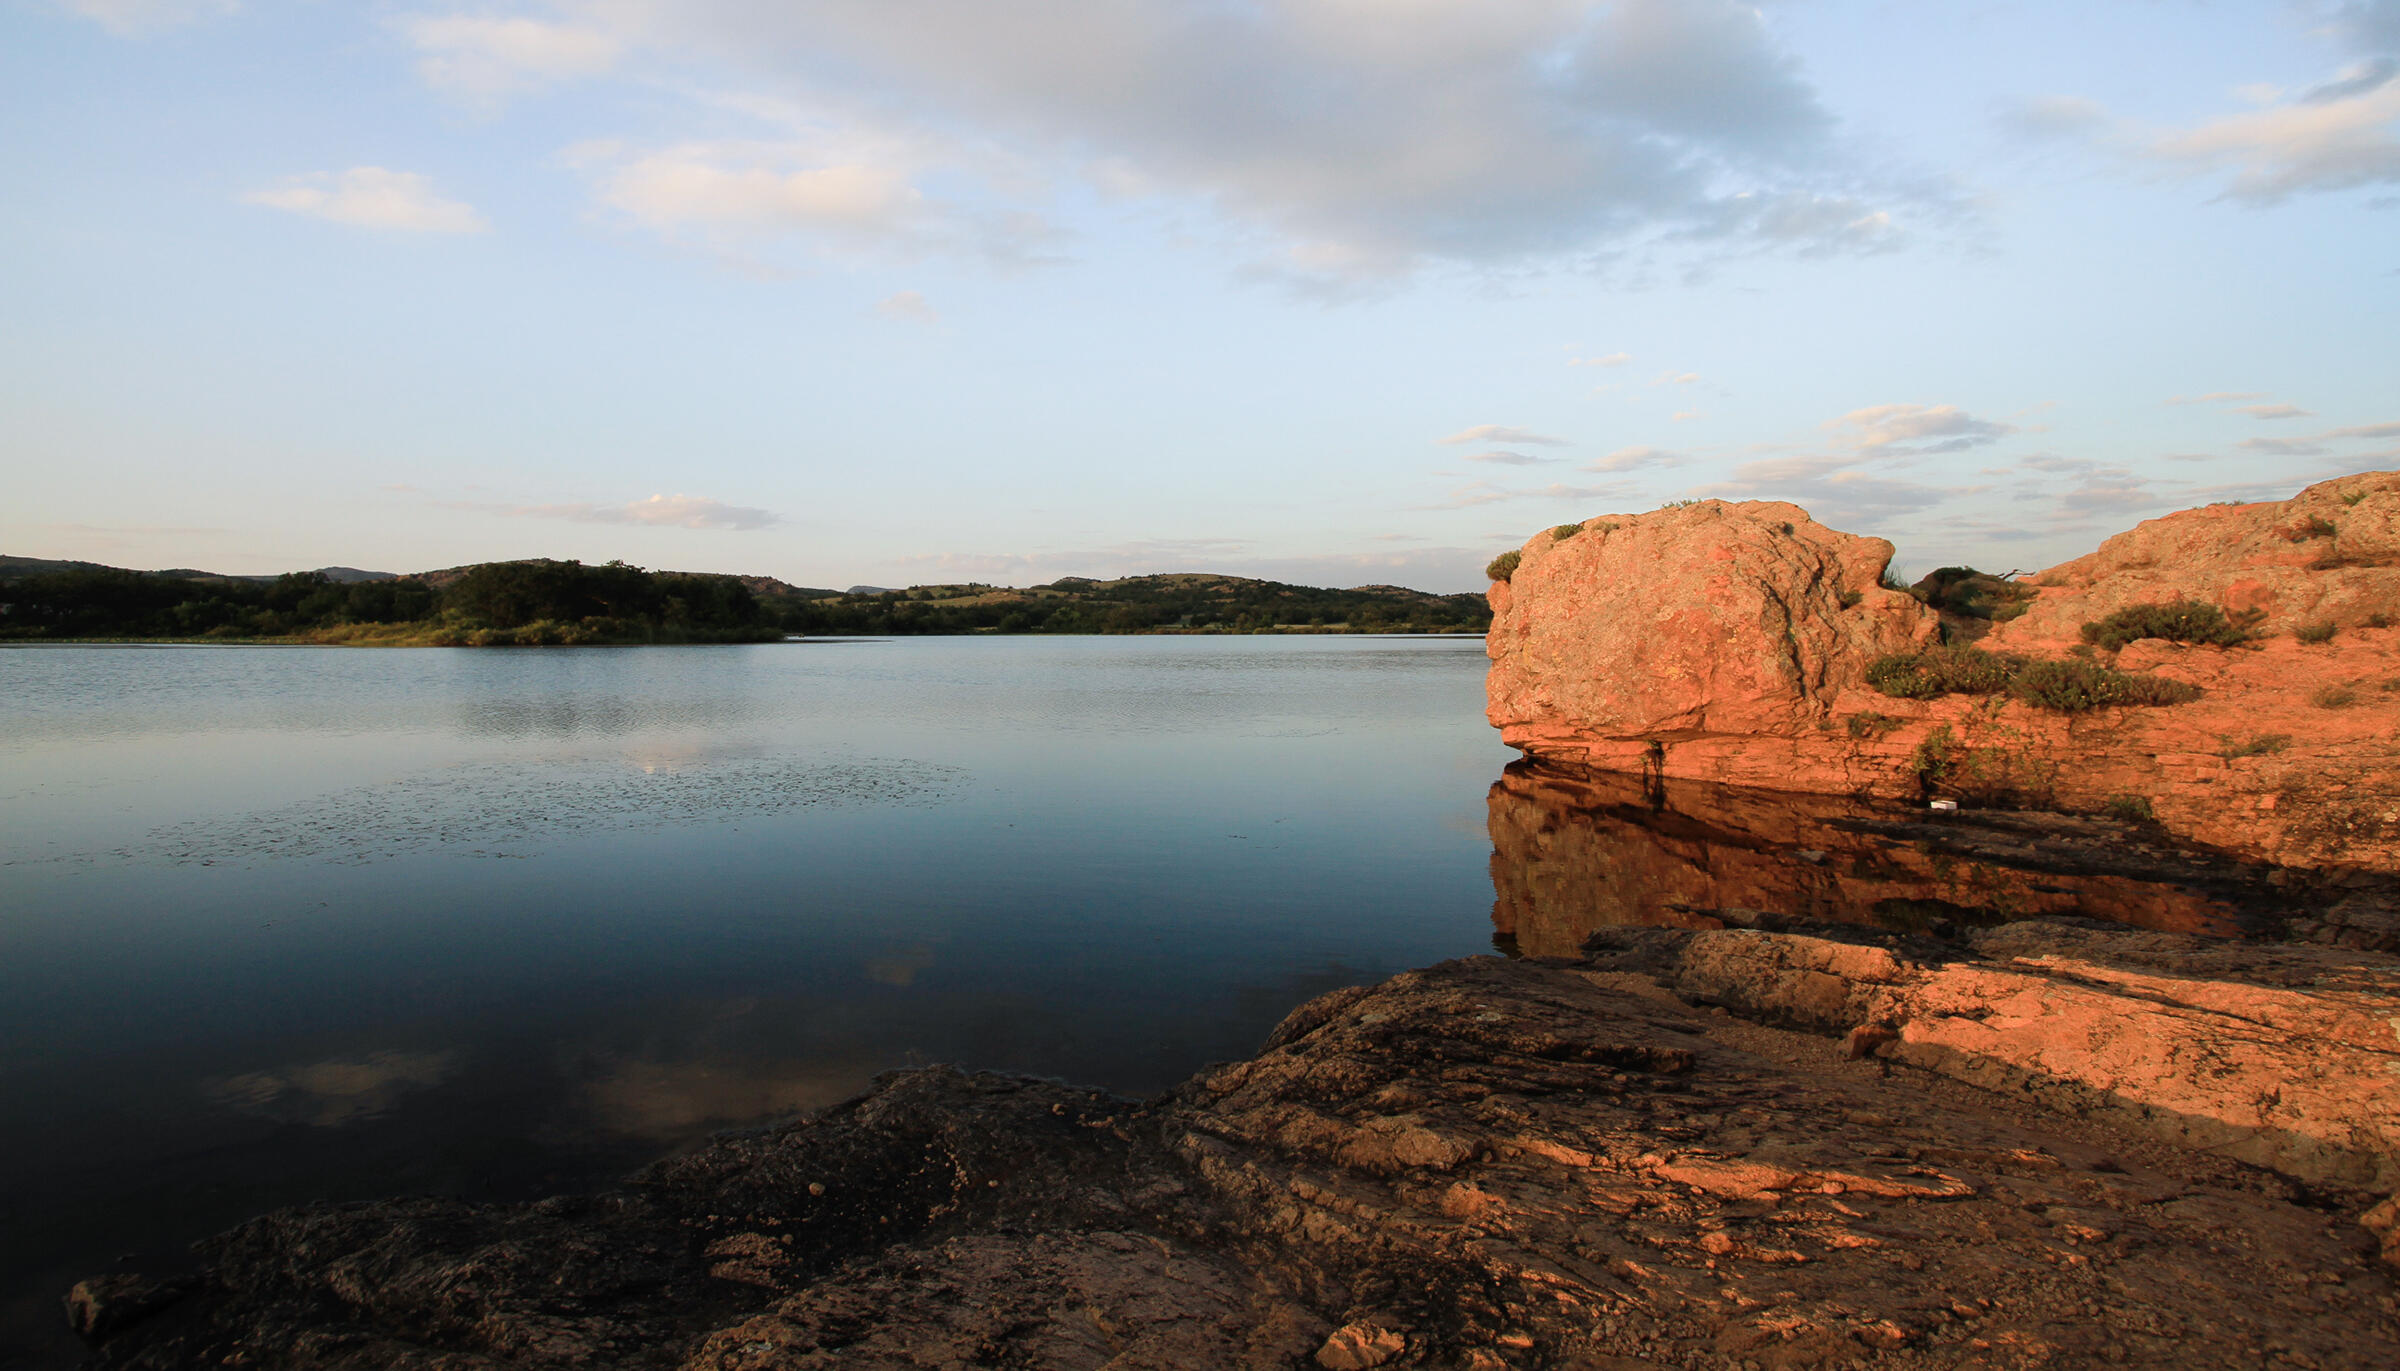 """Quanah Parker Lake, Wichita Mountains Wildlife Refuge, Oklahoma. <a href=""""https://www.flickr.com/photos/lsmith2010/4855722348/"""">Larry Smith</a>/Flickr CC (CC BY-NC 2.0)"""